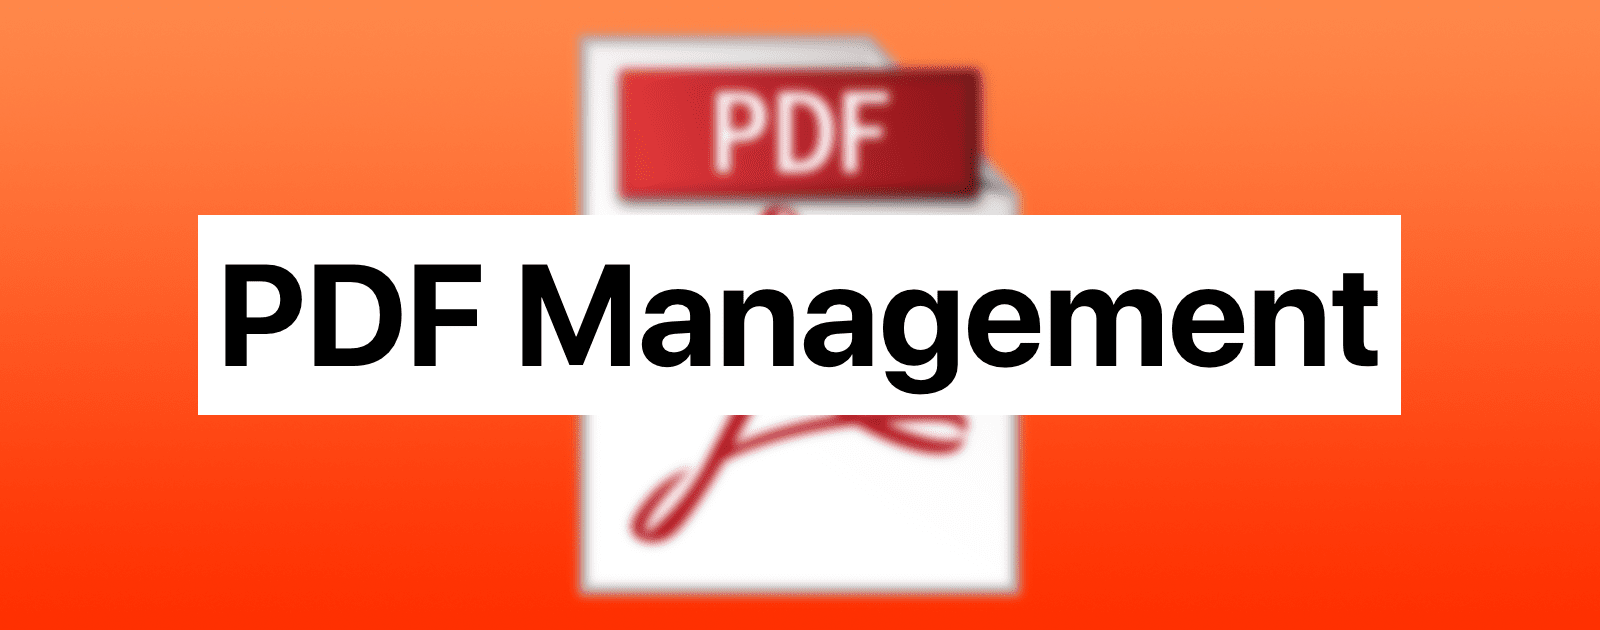 What's the Best Method to Manage PDFs on Apple Devices